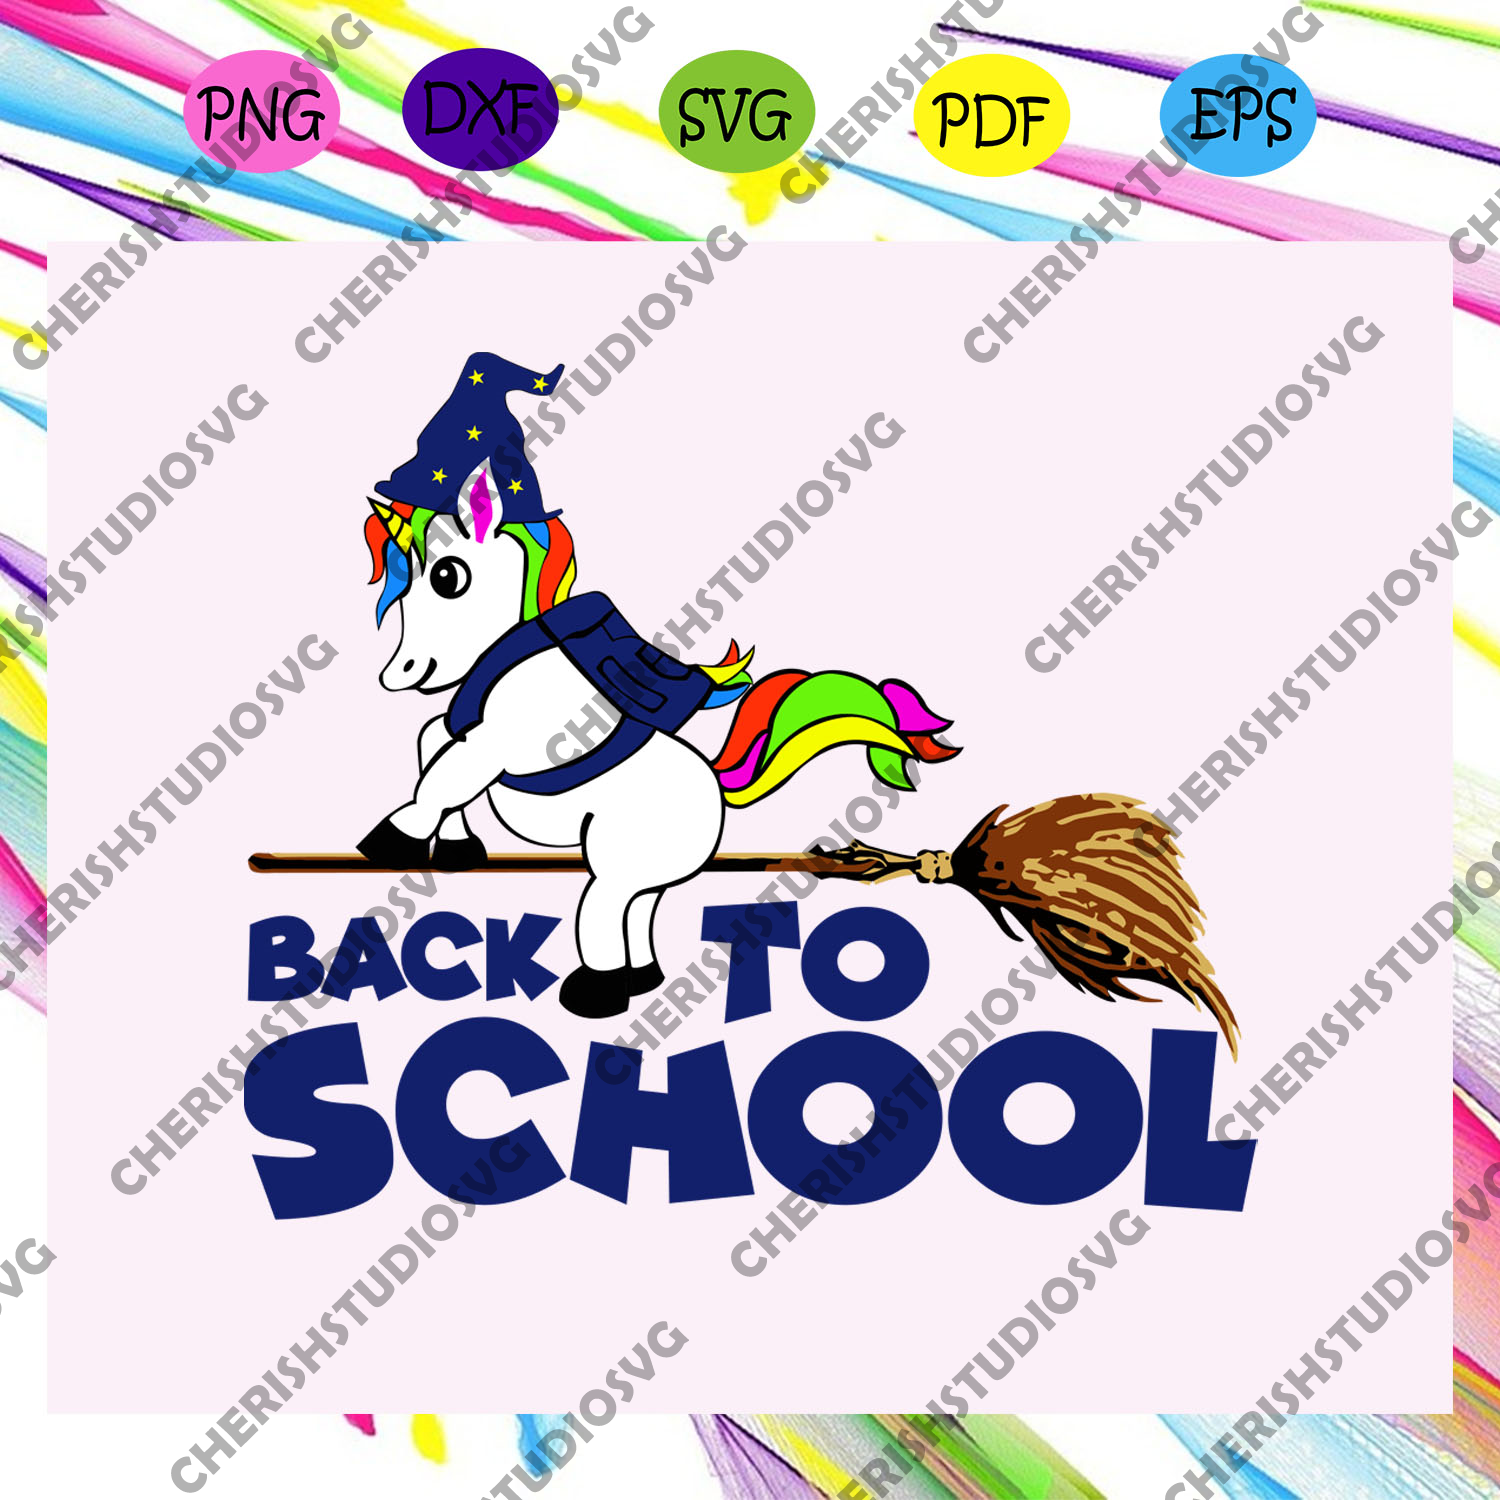 8th grade level complete svg, 8th grade graduation svg, gamer graduation svg, graduation day svg, graduate, graduate gift, graduation 2020, graduate 2020 svg, Files For Silhouette, Files For Cricut, SVG, DXF, EPS, PNG, Instant Download